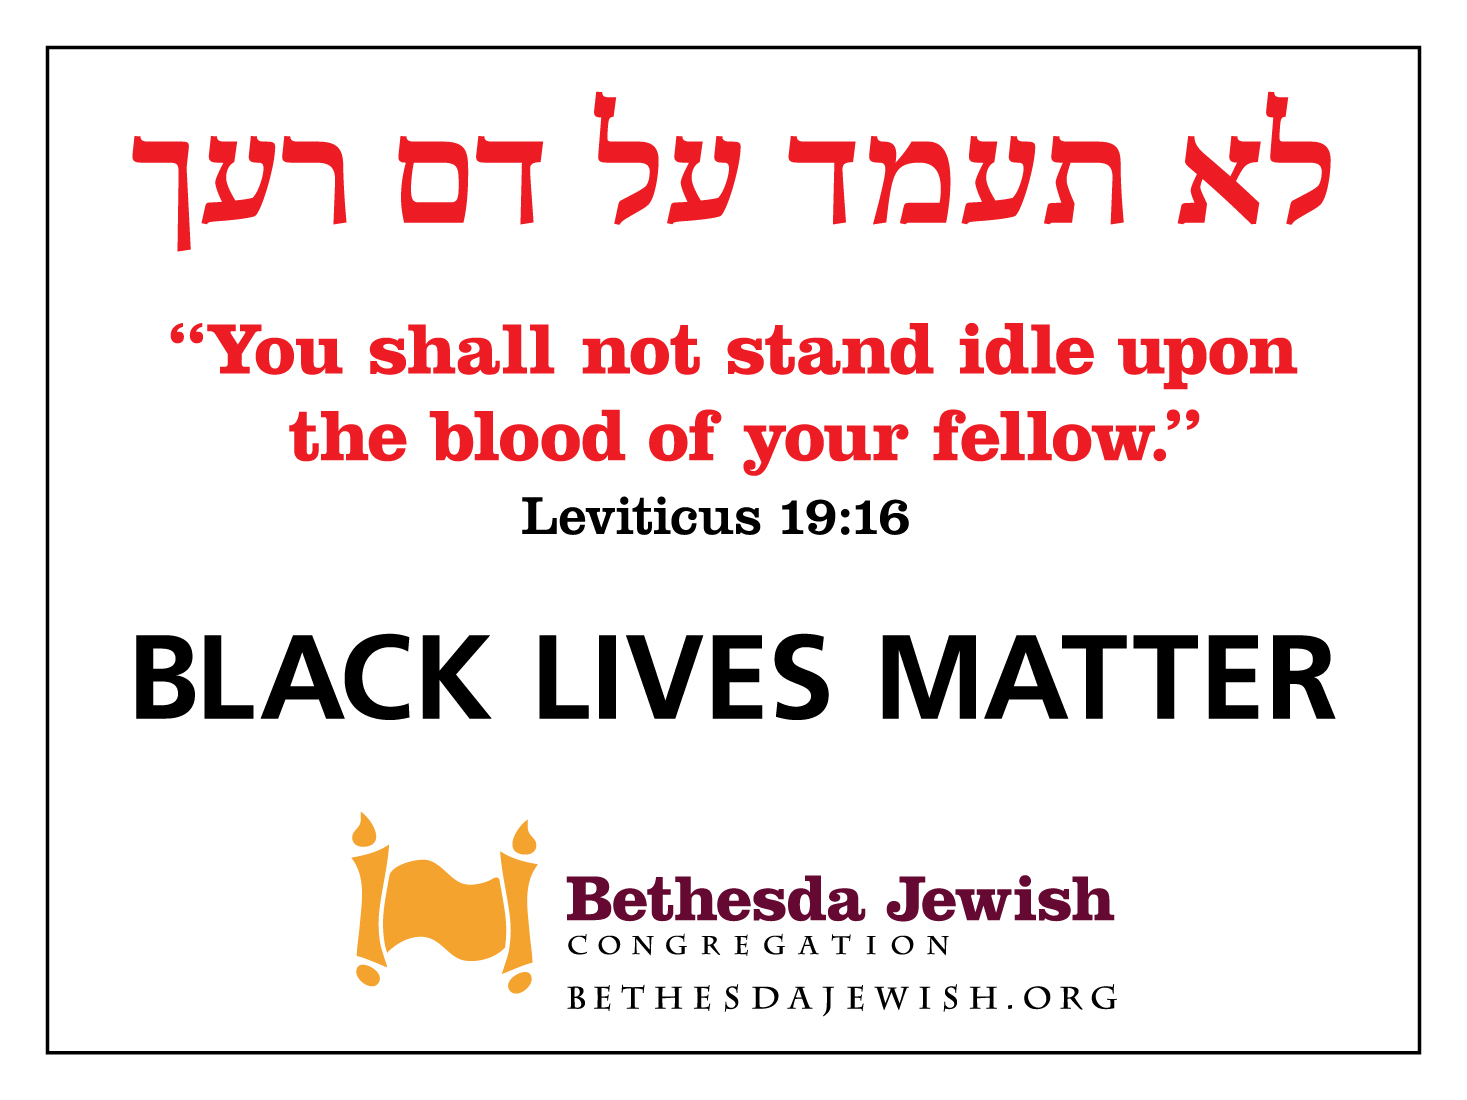 Black Lives Matter (BLM) sign for Bethesda Jewish Congregation.